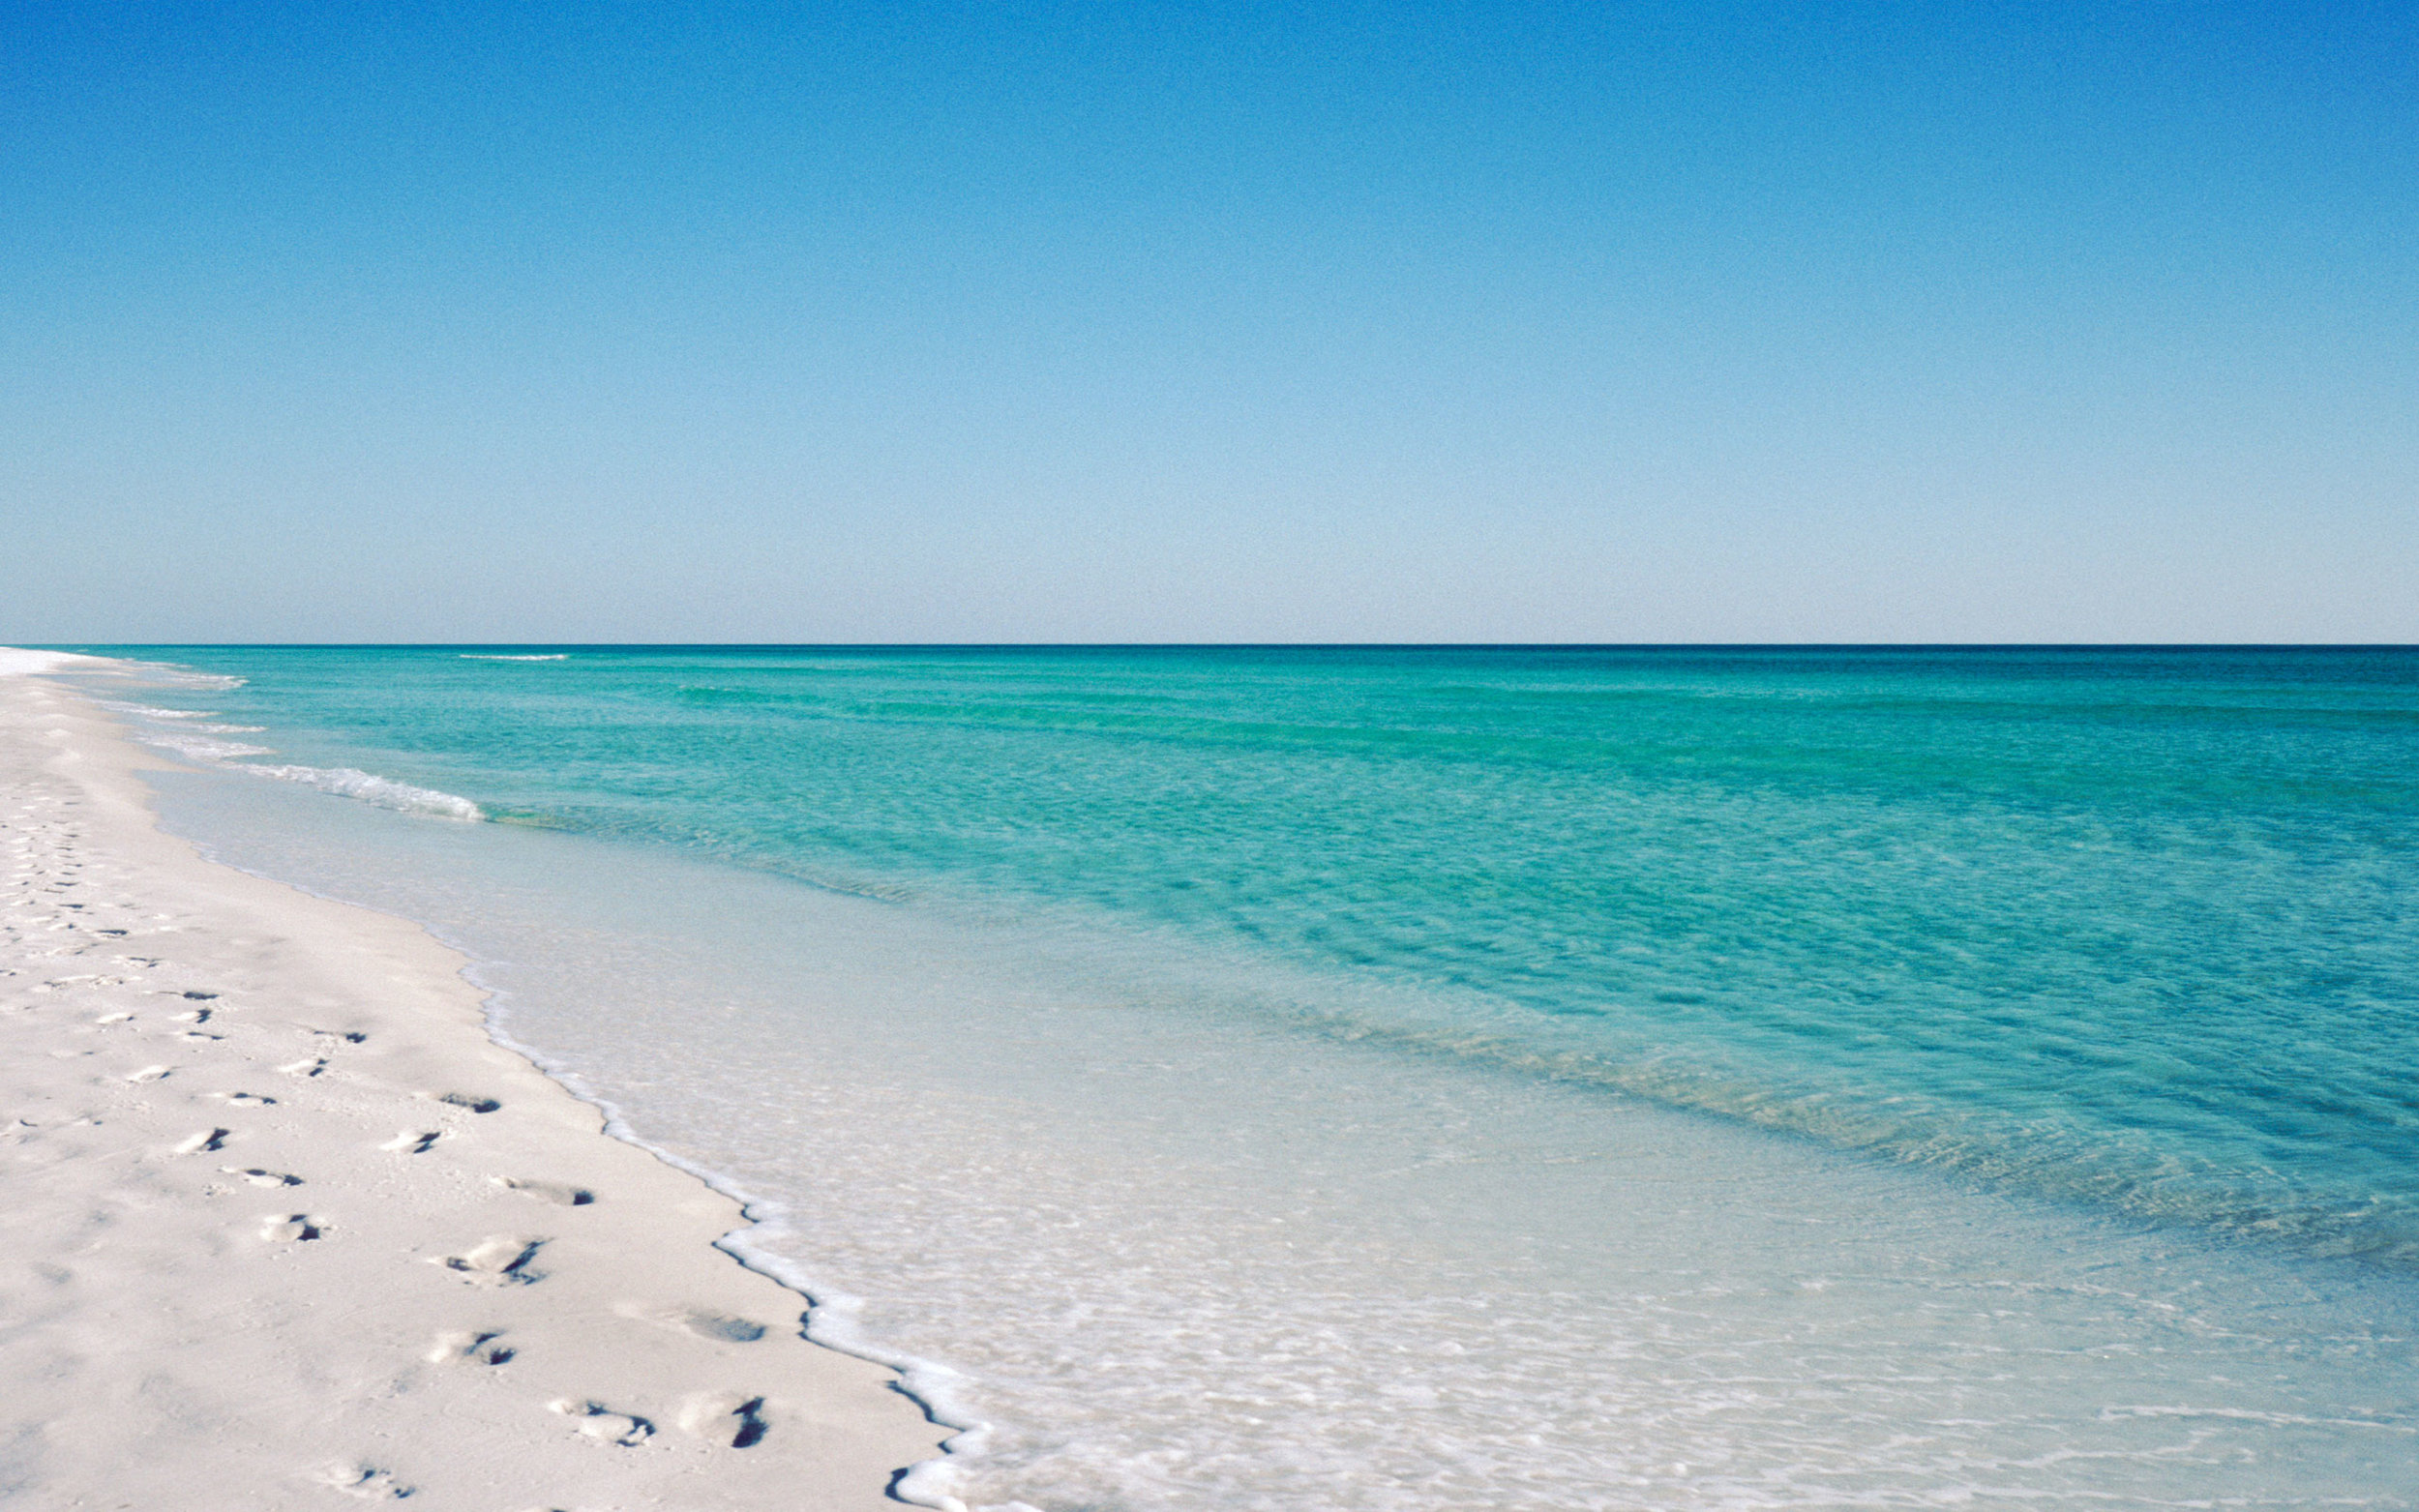 Sanibel_Island_Beach_Wallpaper_by_VistaDude